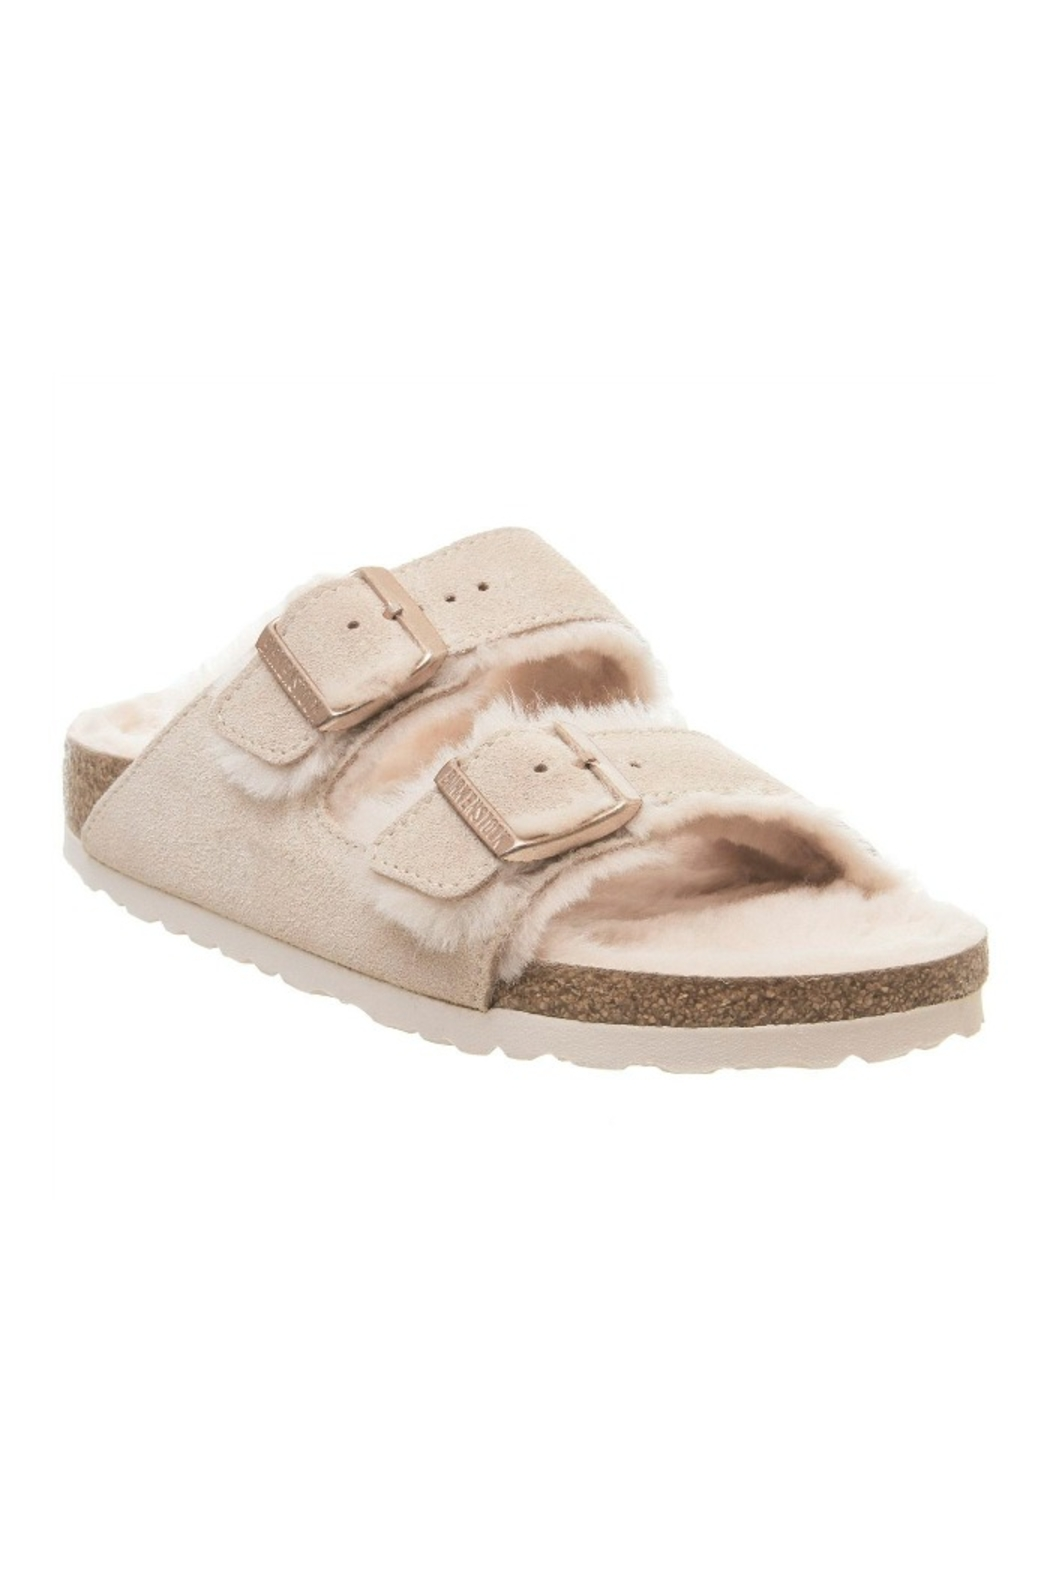 Birkenstock Arizona Shearling - Main Image